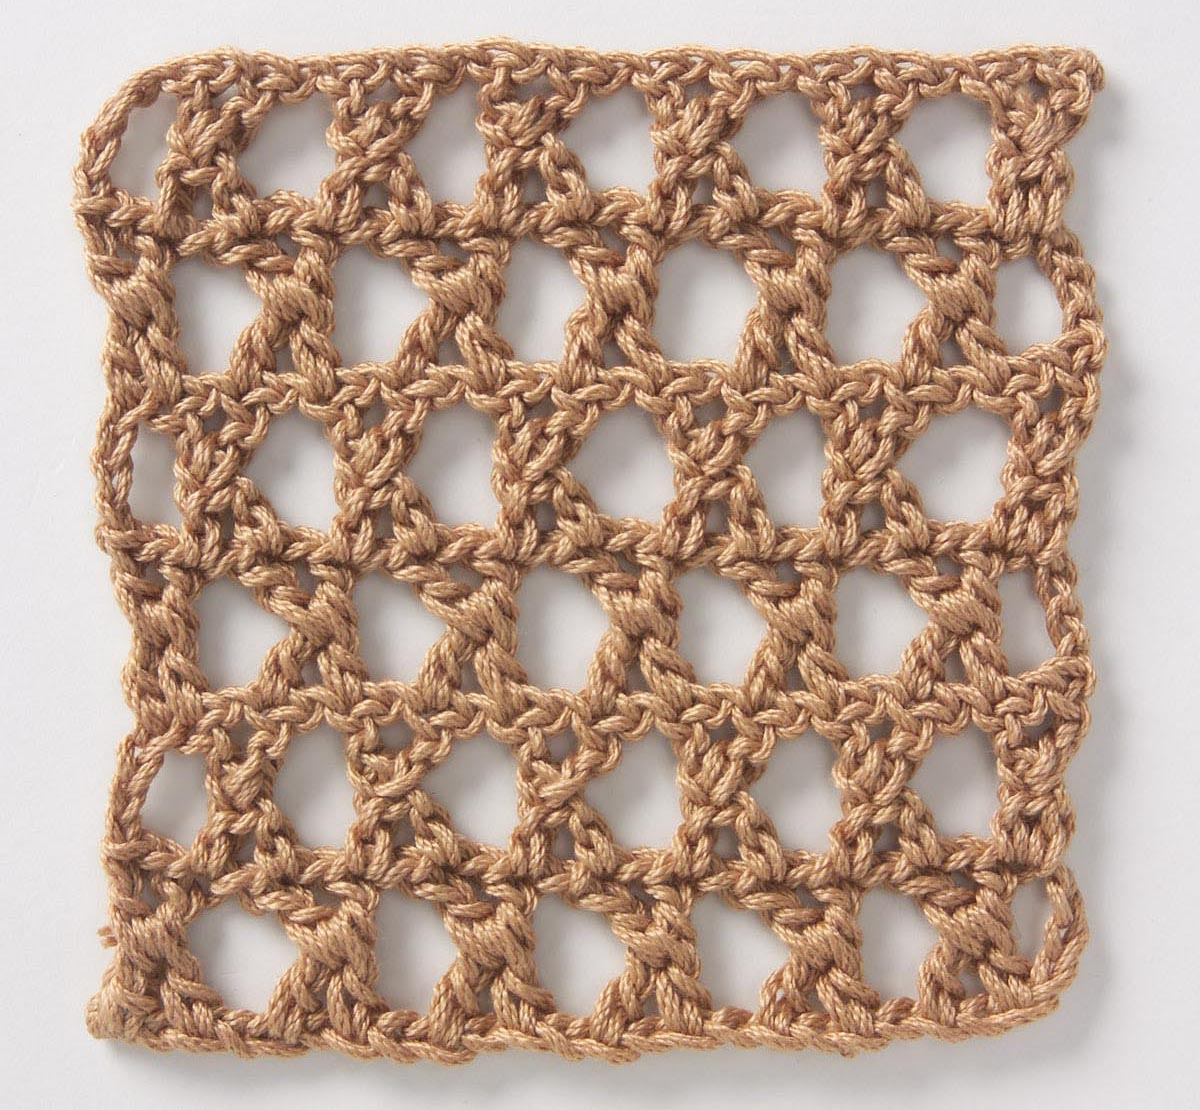 Crochet Star Stitch Tutorial And Patterns Stitch Piece N